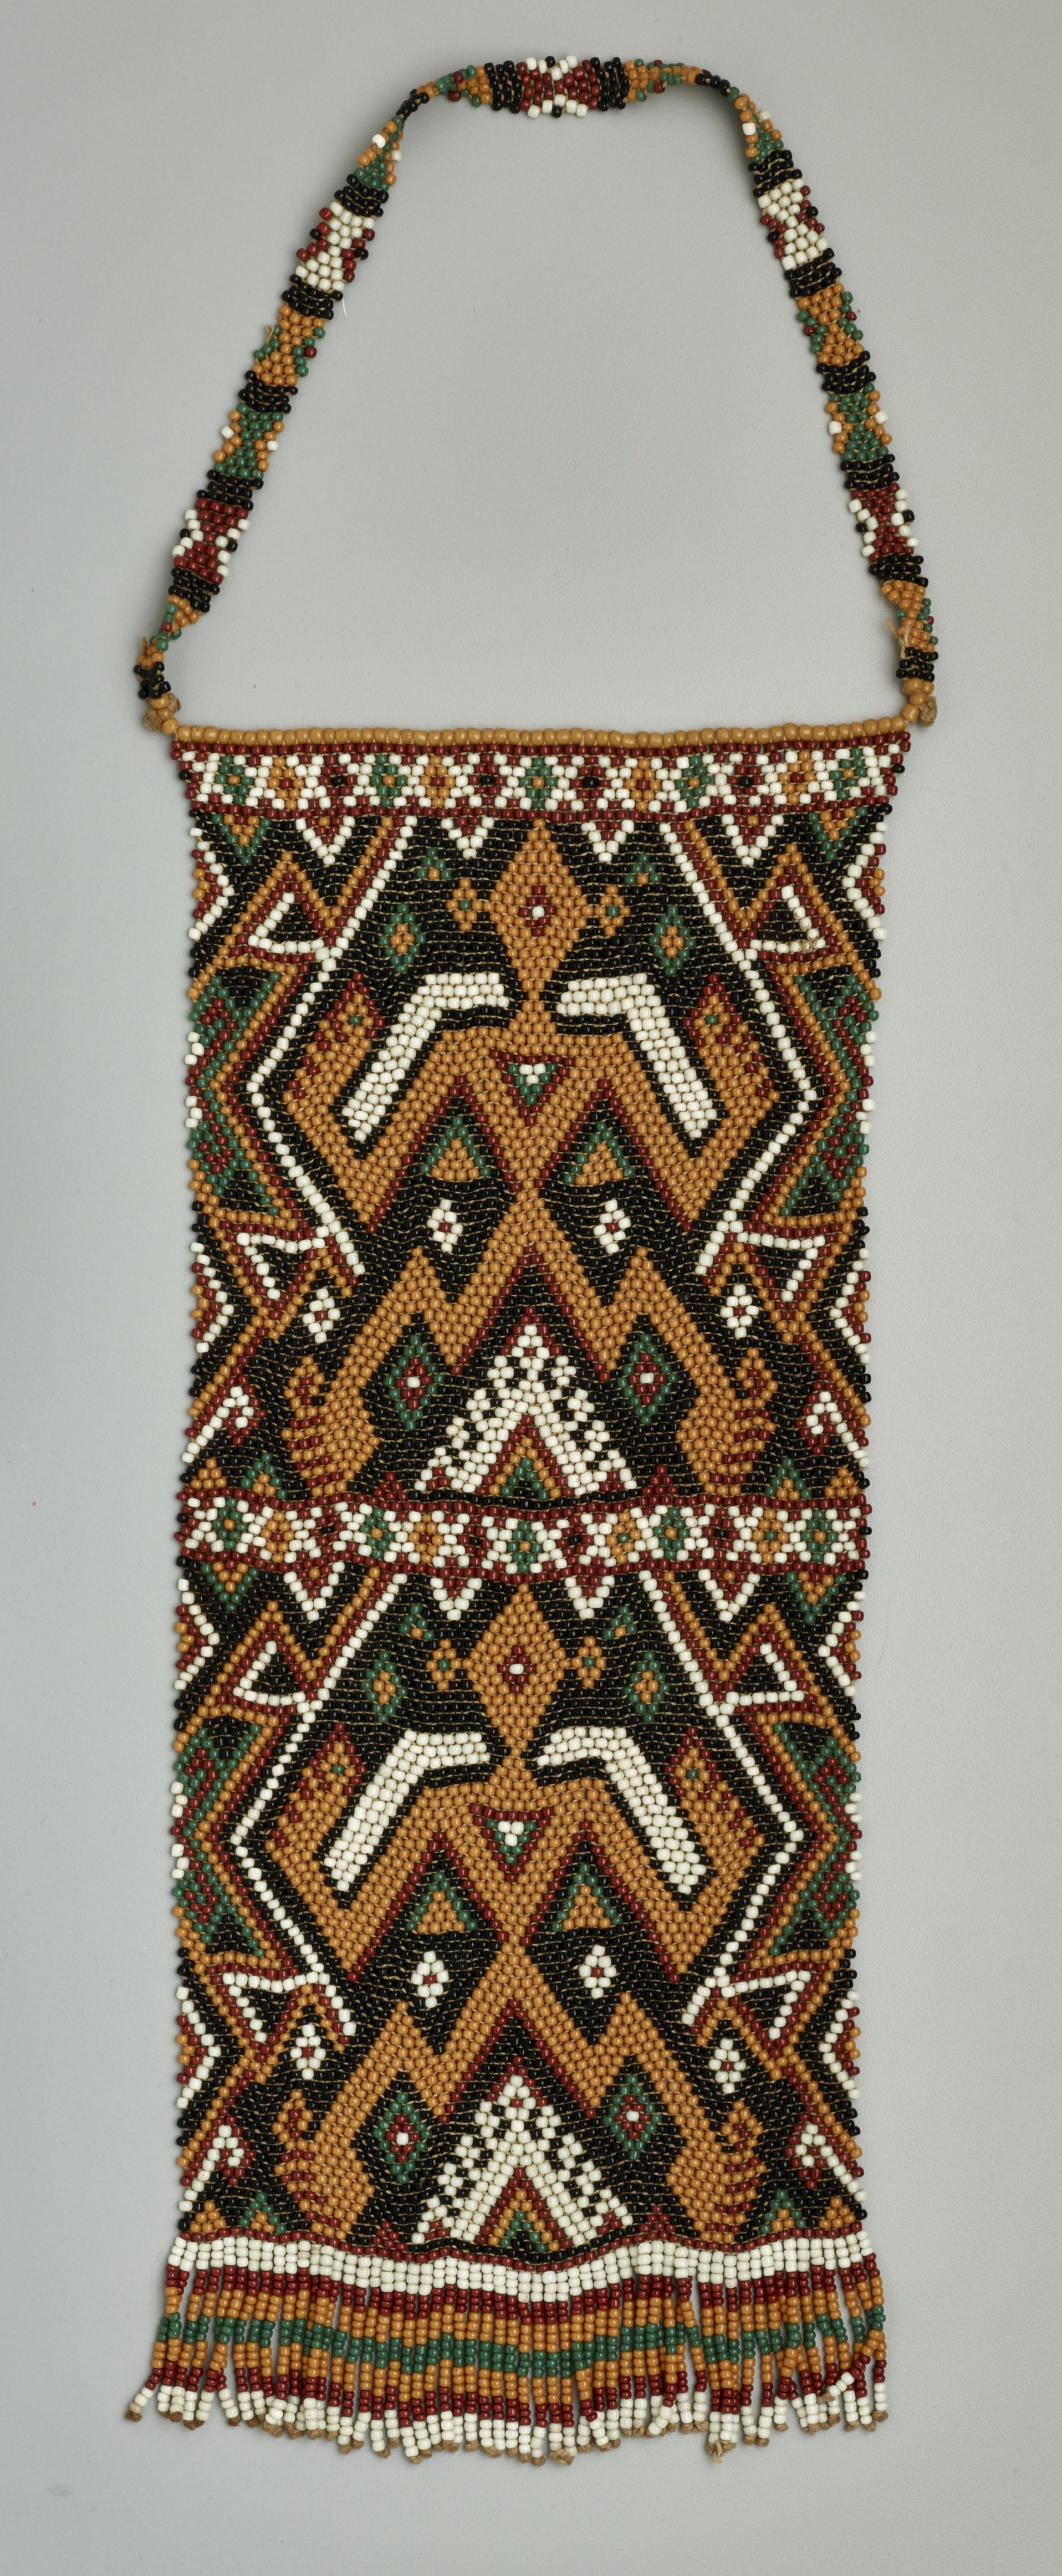 Beaded Frontlet © The Dallas Museum of Art | Texas, USA